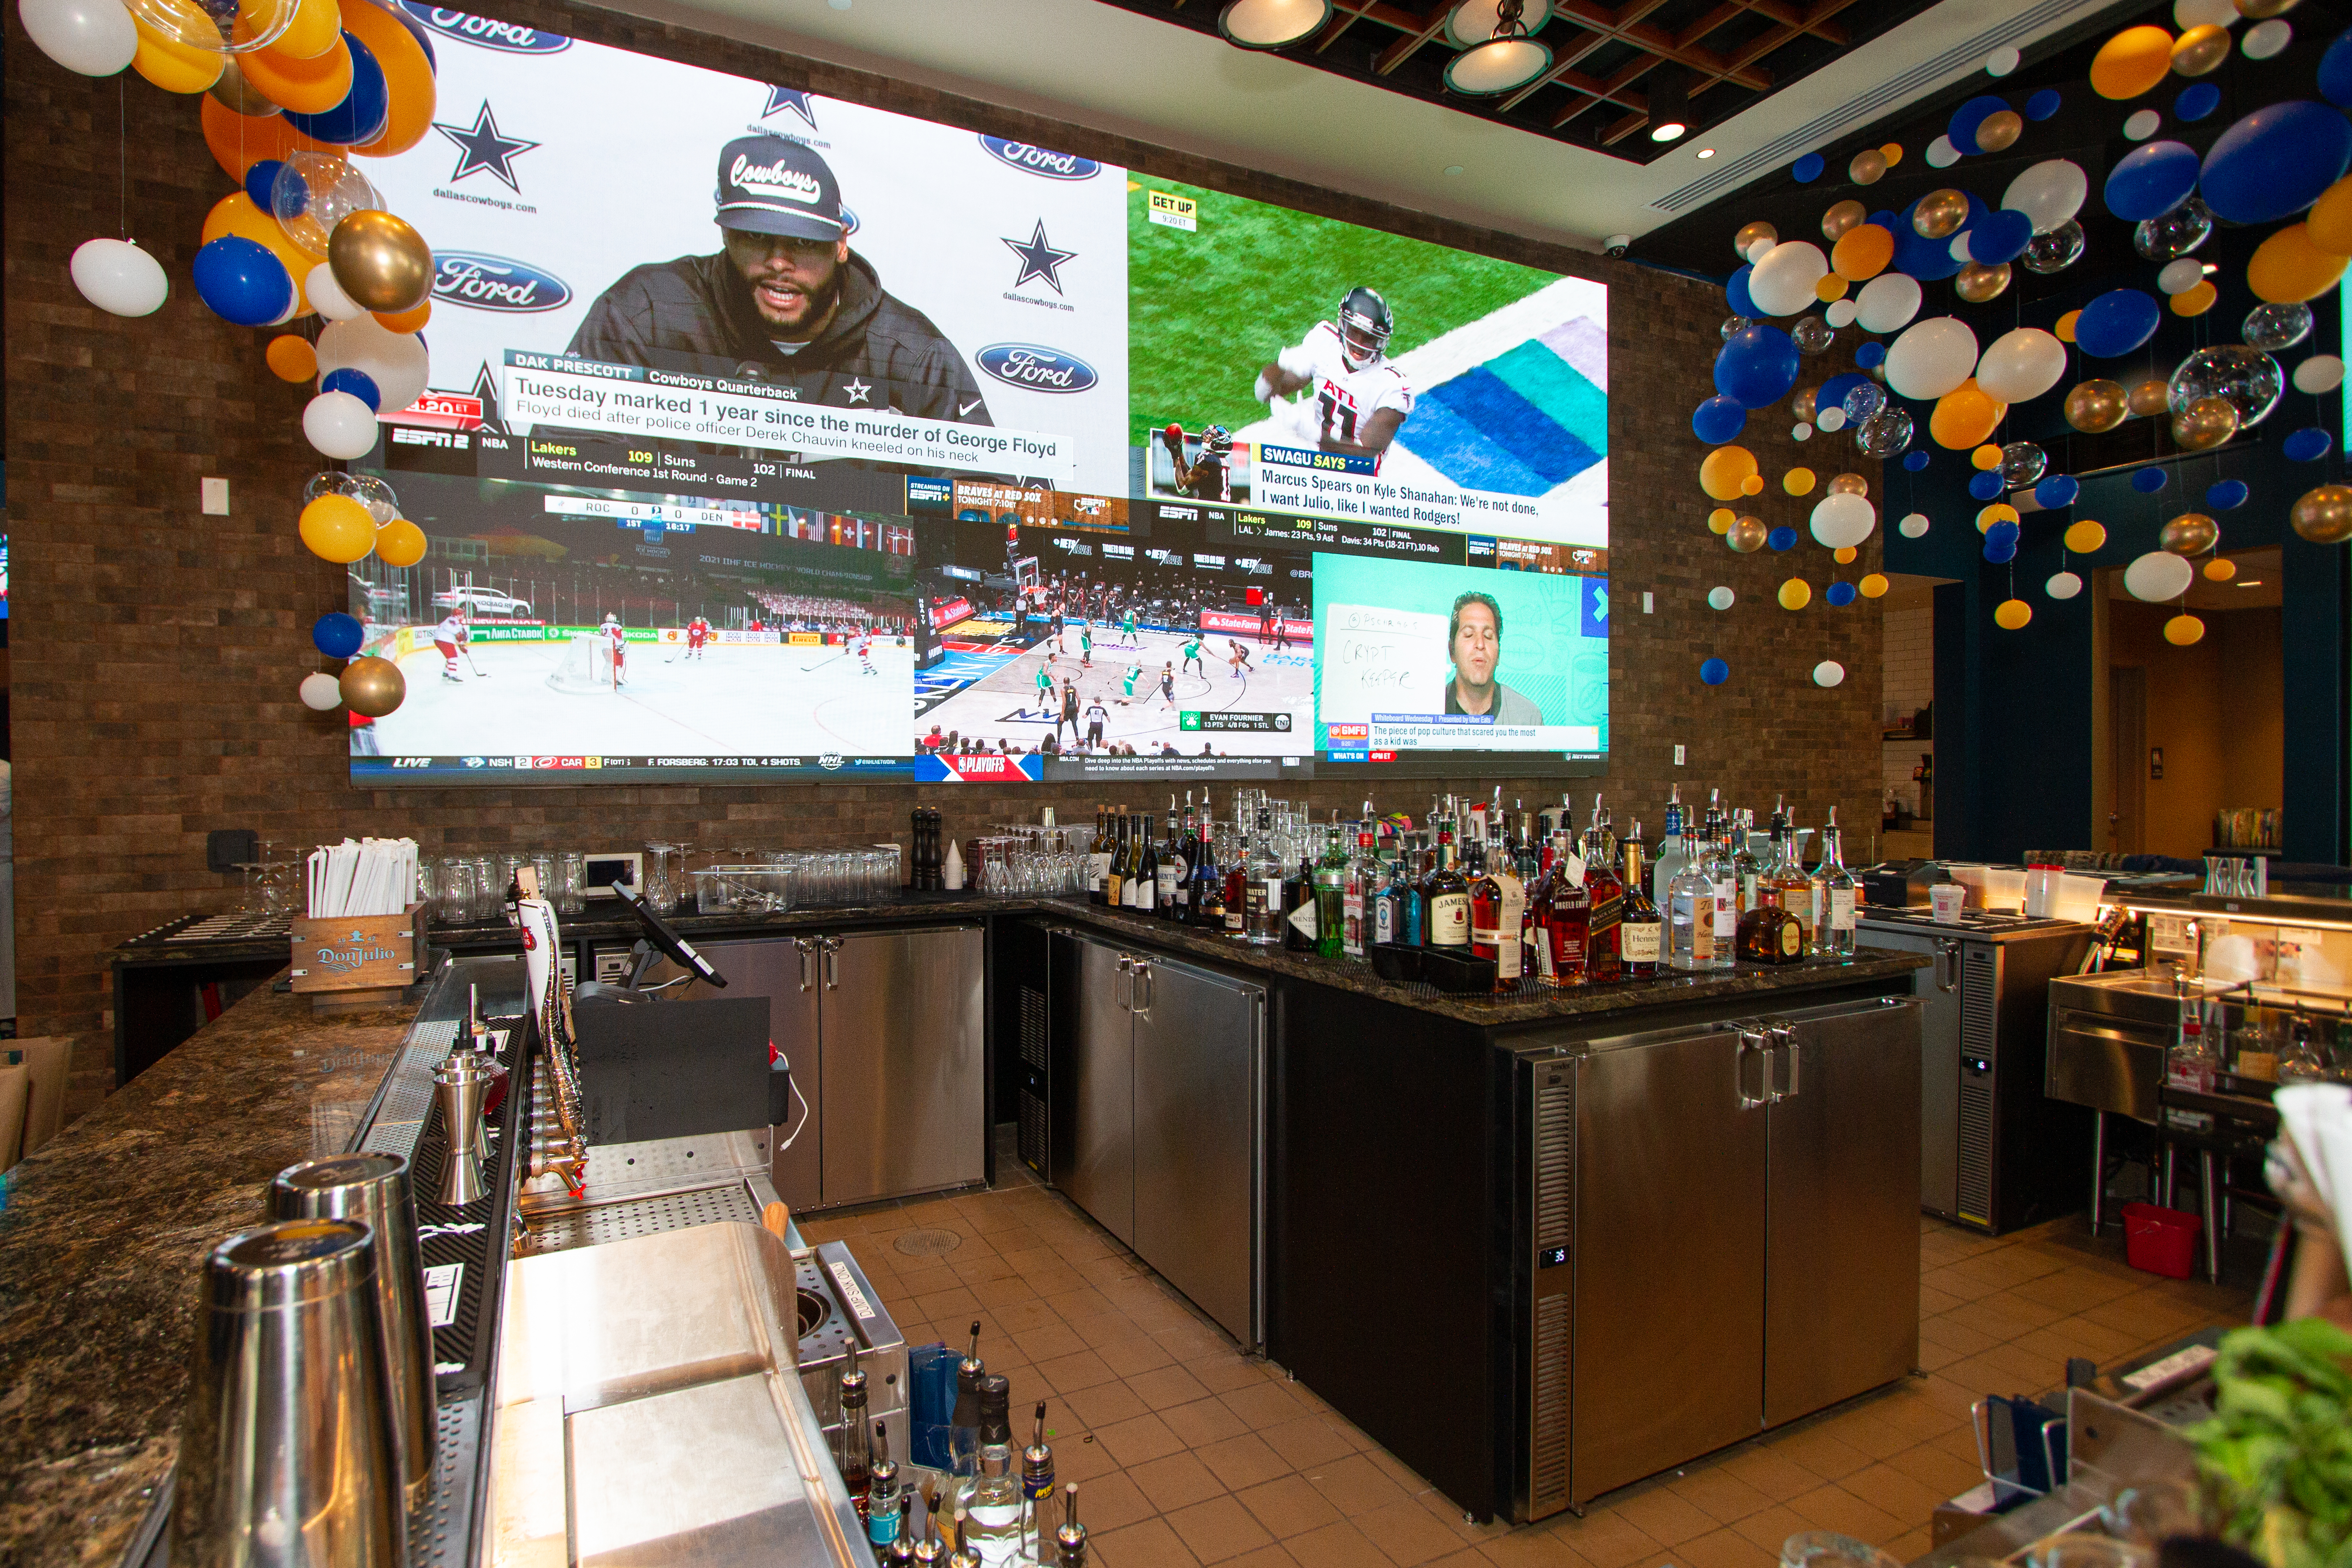 A huge screen behind the bar at William Hill Sportsbook shows off multiple sports at once